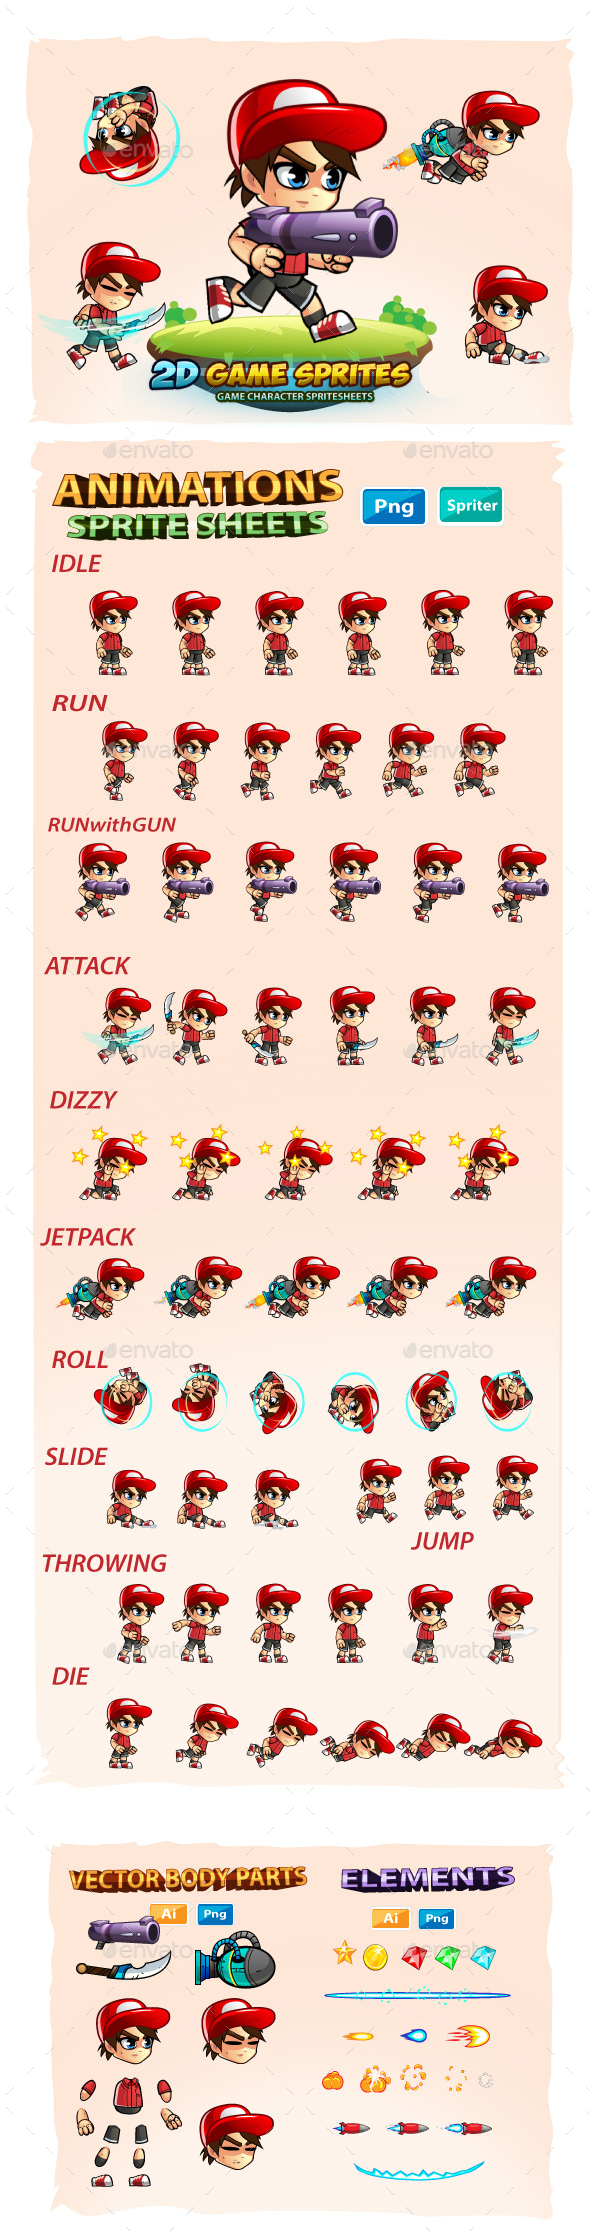 2D Game Character Sprites Cracked Graphicriver (4 73 MB